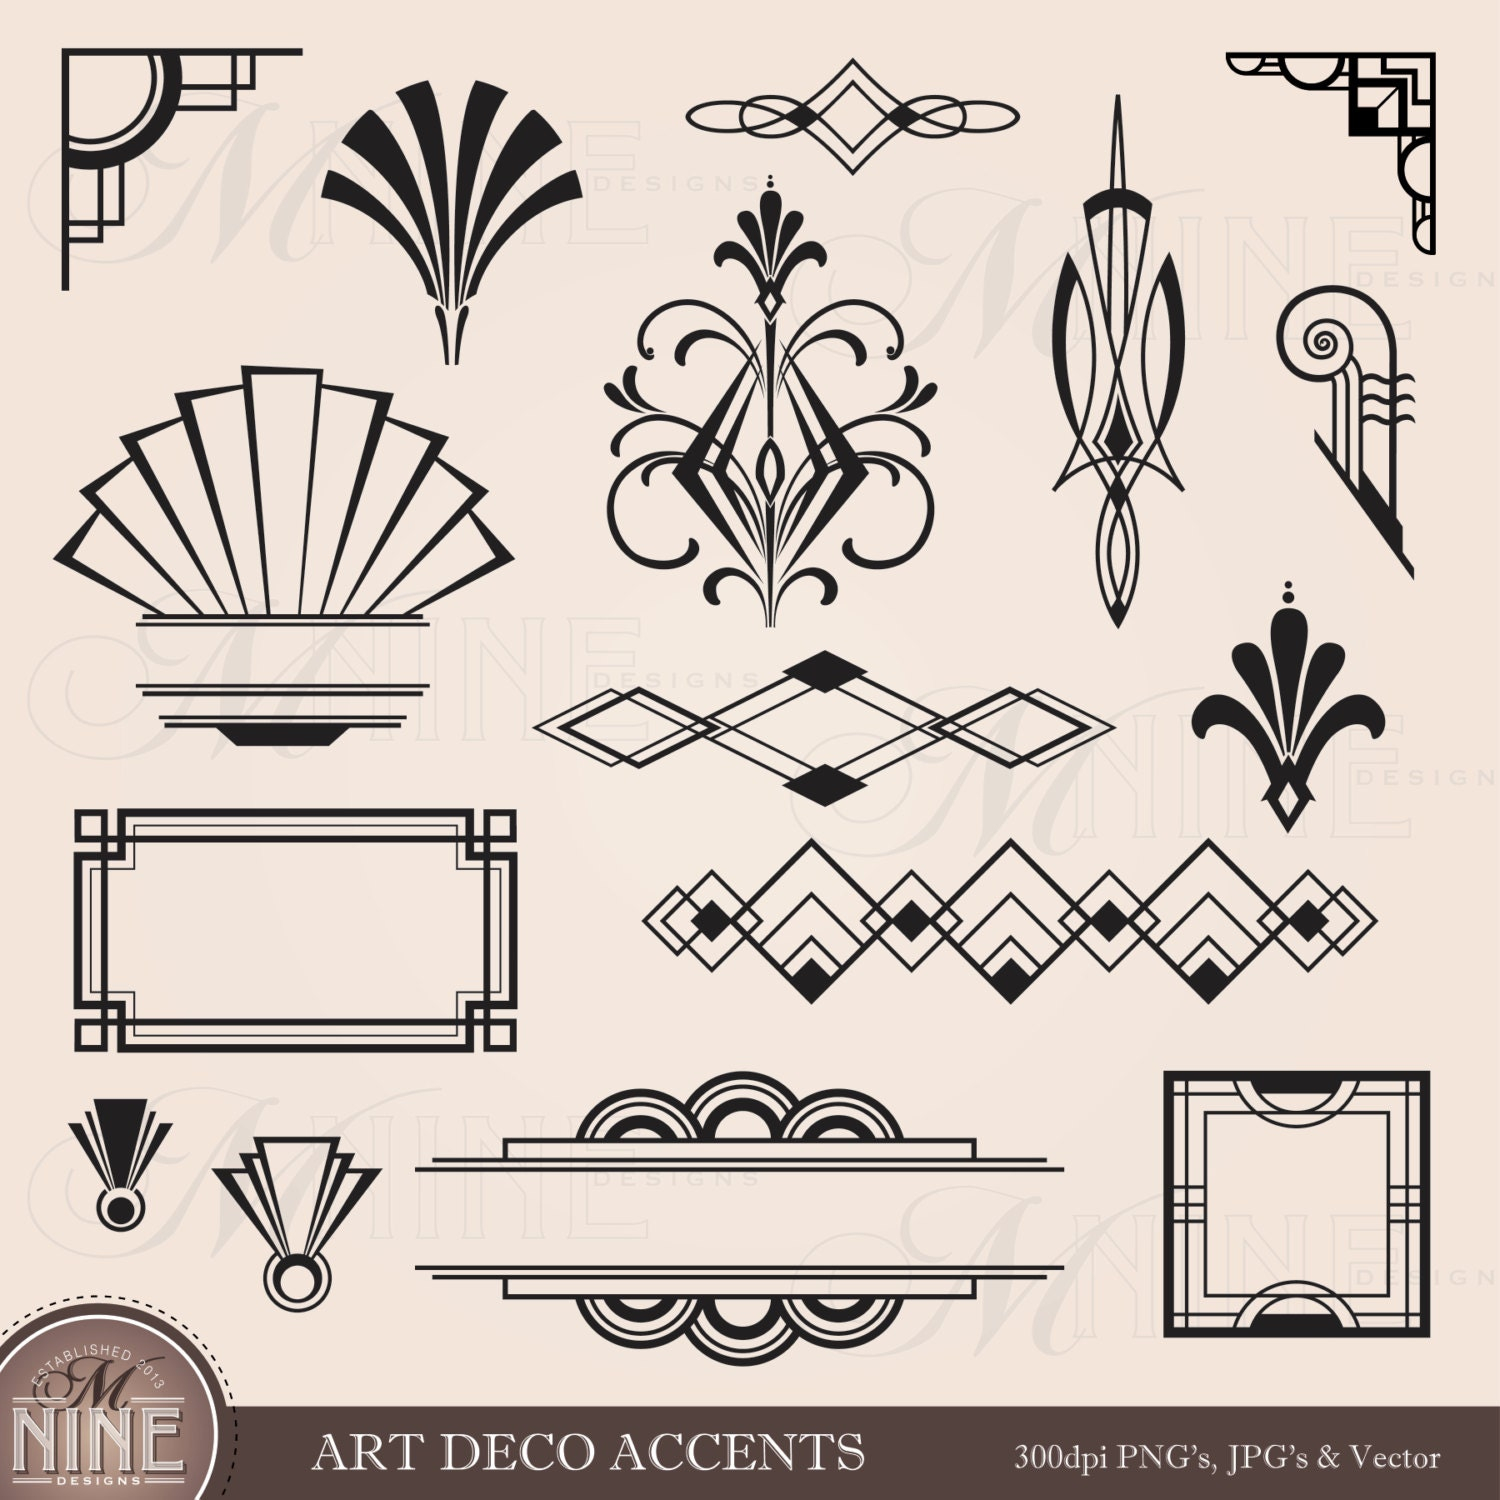 Digital Clipart ART DECO Design Elements Frames By MNINEDESIGNS